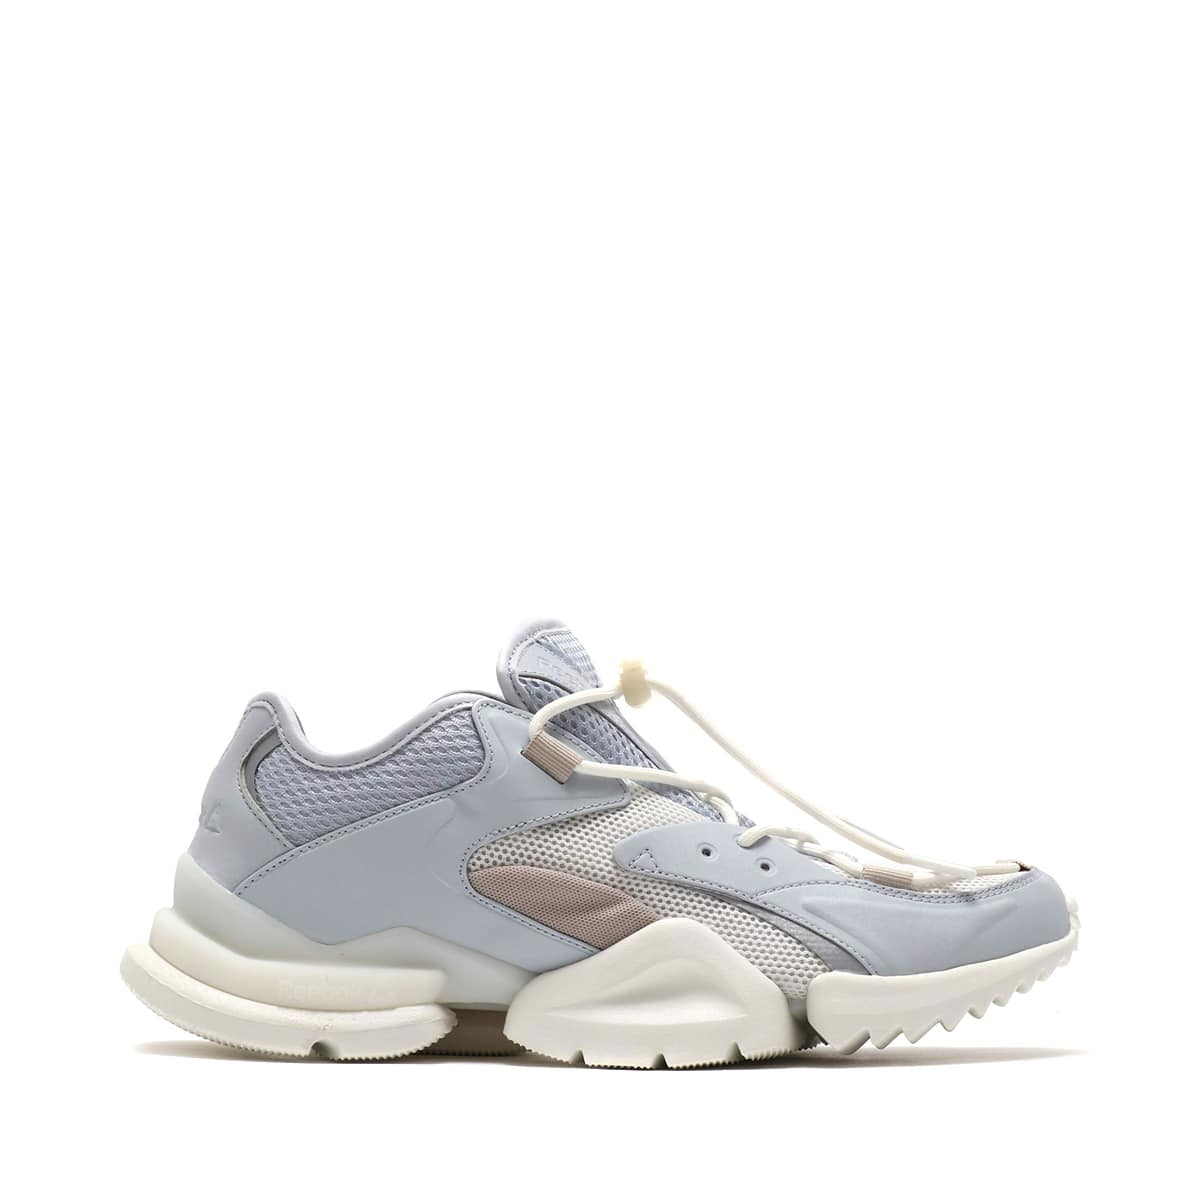 """Reebok RUN R96 GRY/CHALK/SAND/GRY 19FW-I""_photo_2"